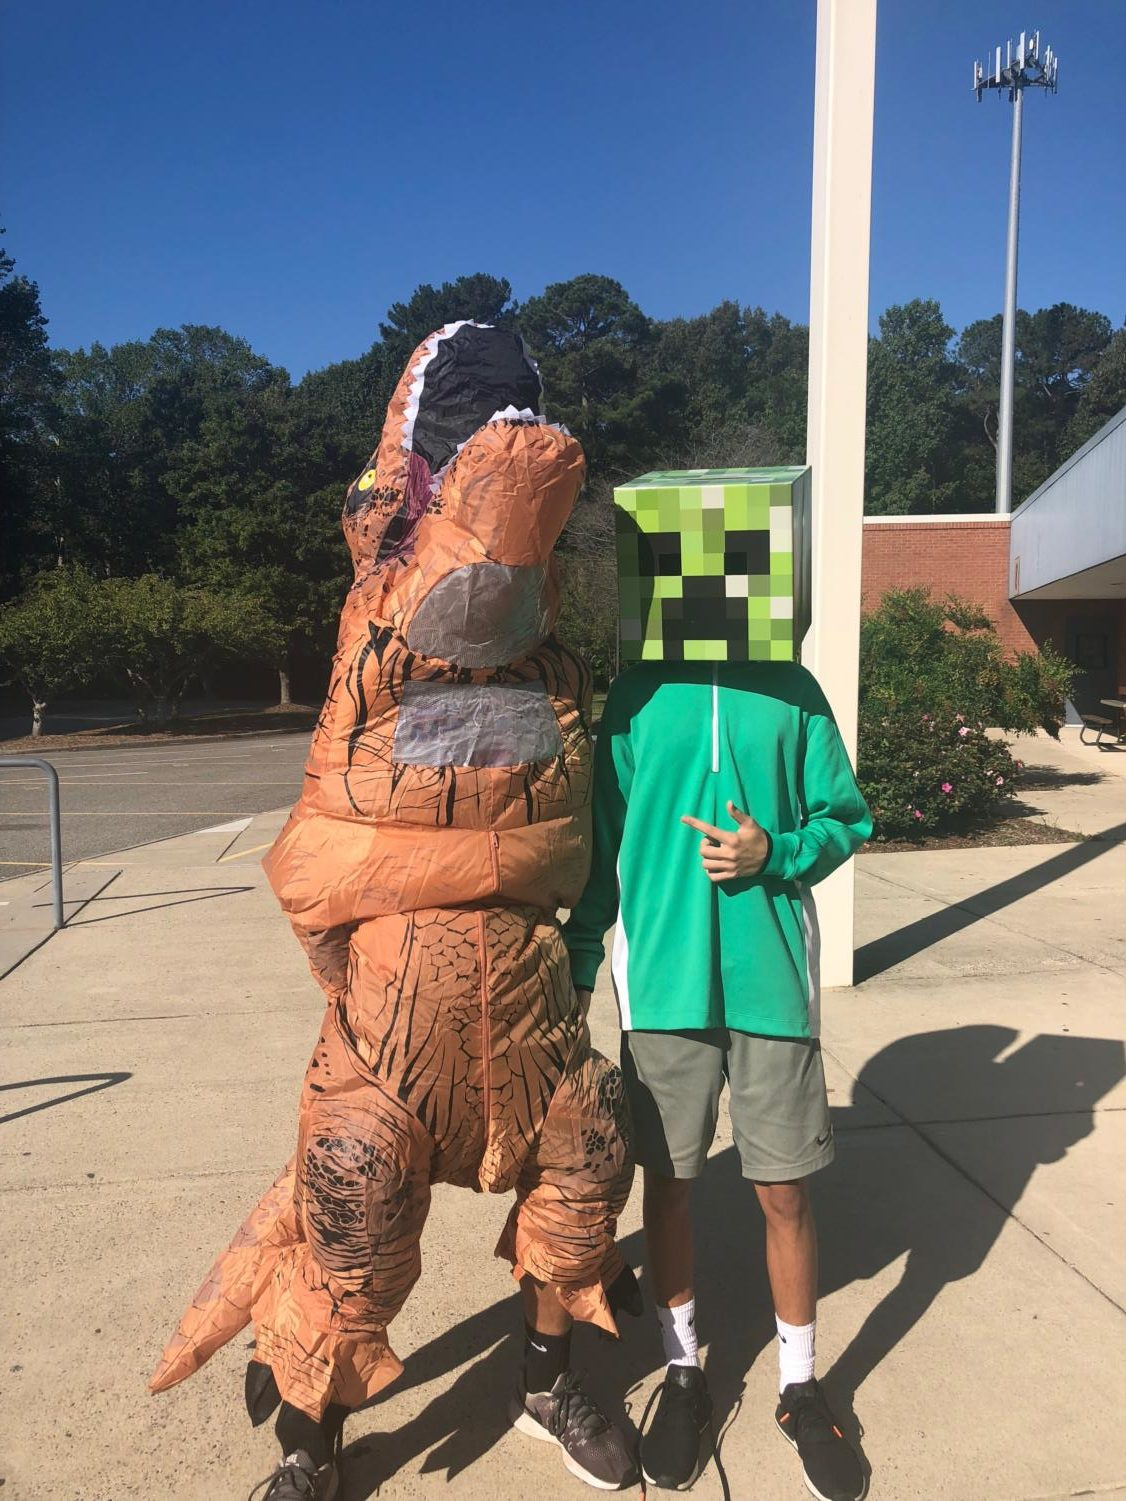 Dylan in the scary Creeper next to drew in the ferocious dinosaur dressed up accordingly for wildlife Wednesday.